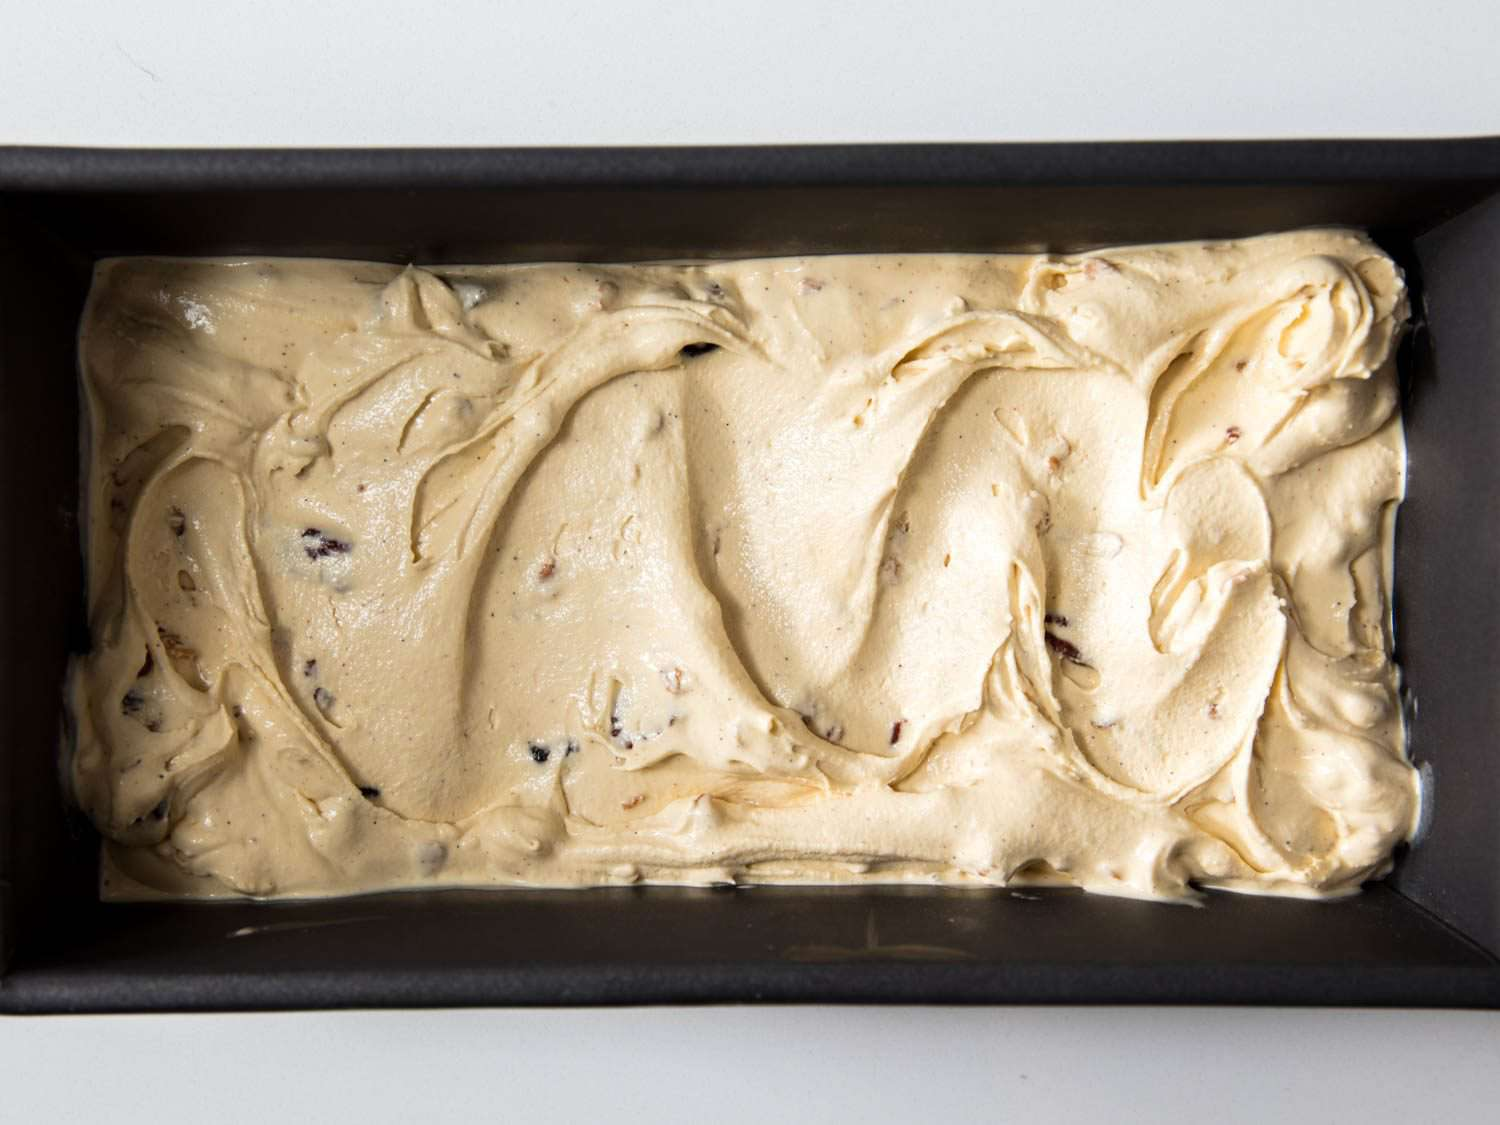 Oatmeal cookie ice cream without toppings